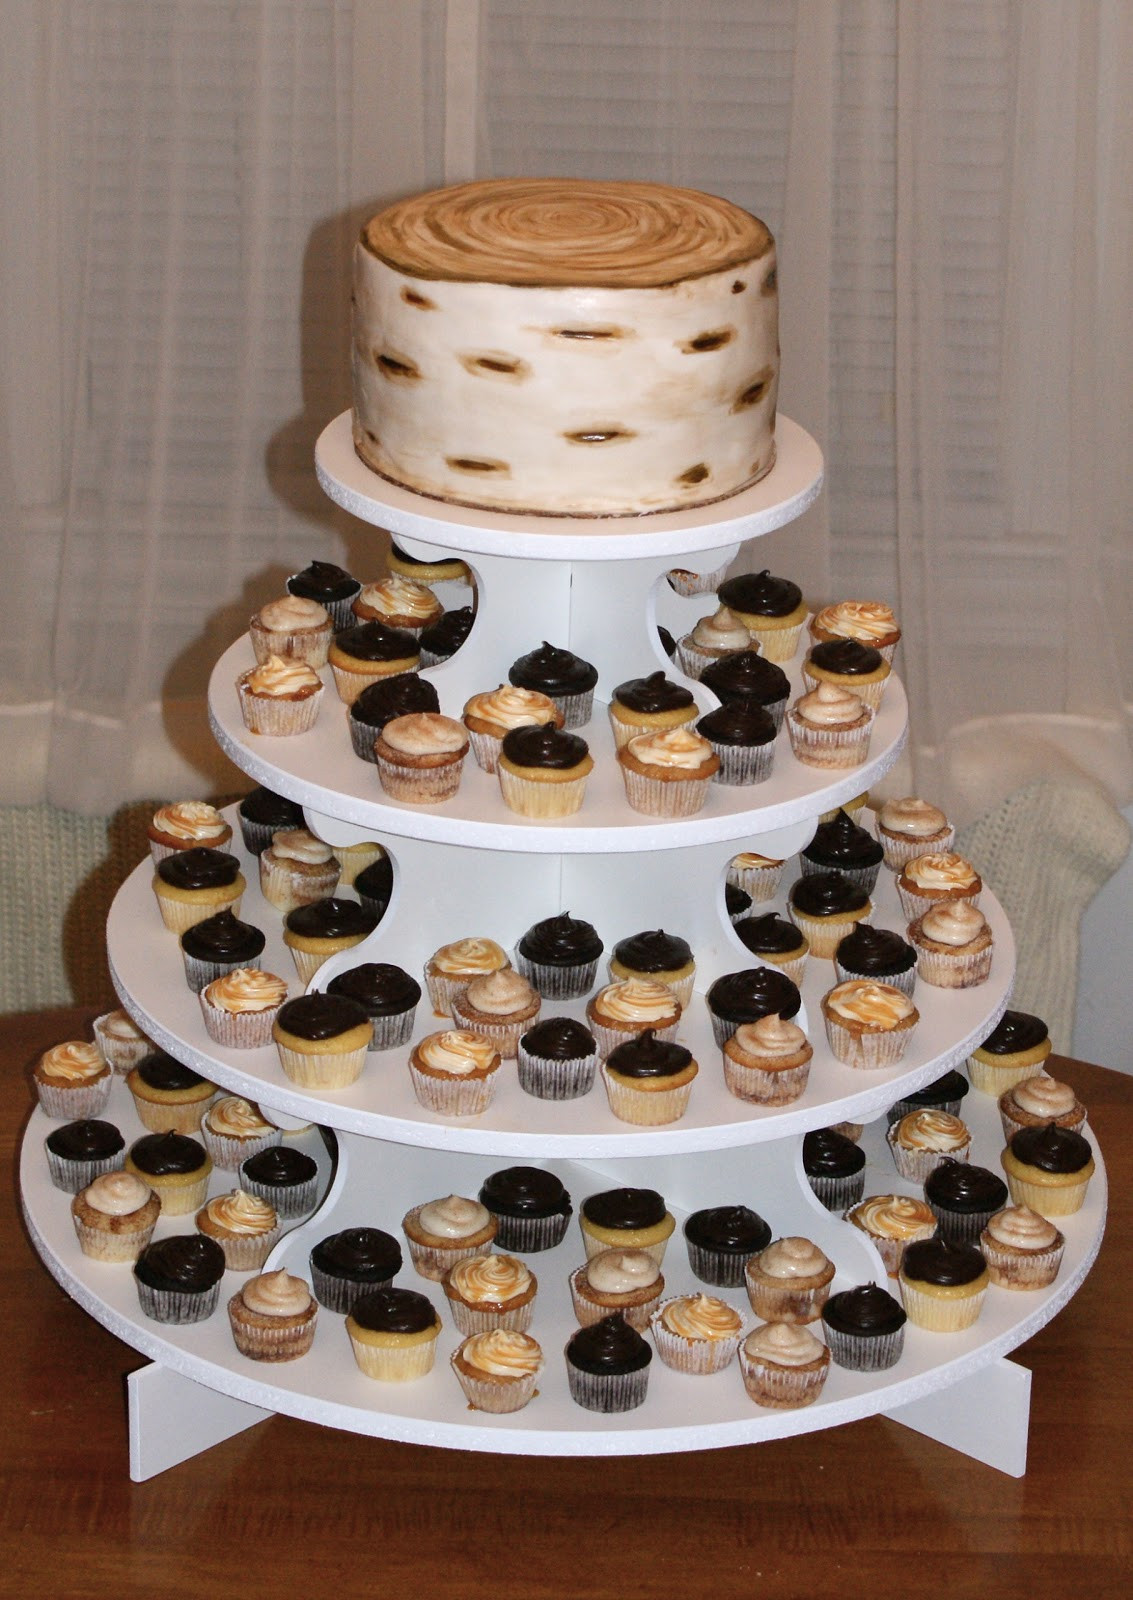 Rustic Wedding Cakes With Cupcakes  Cakes by Meg Rustic Wedding Cake & Cupcakes